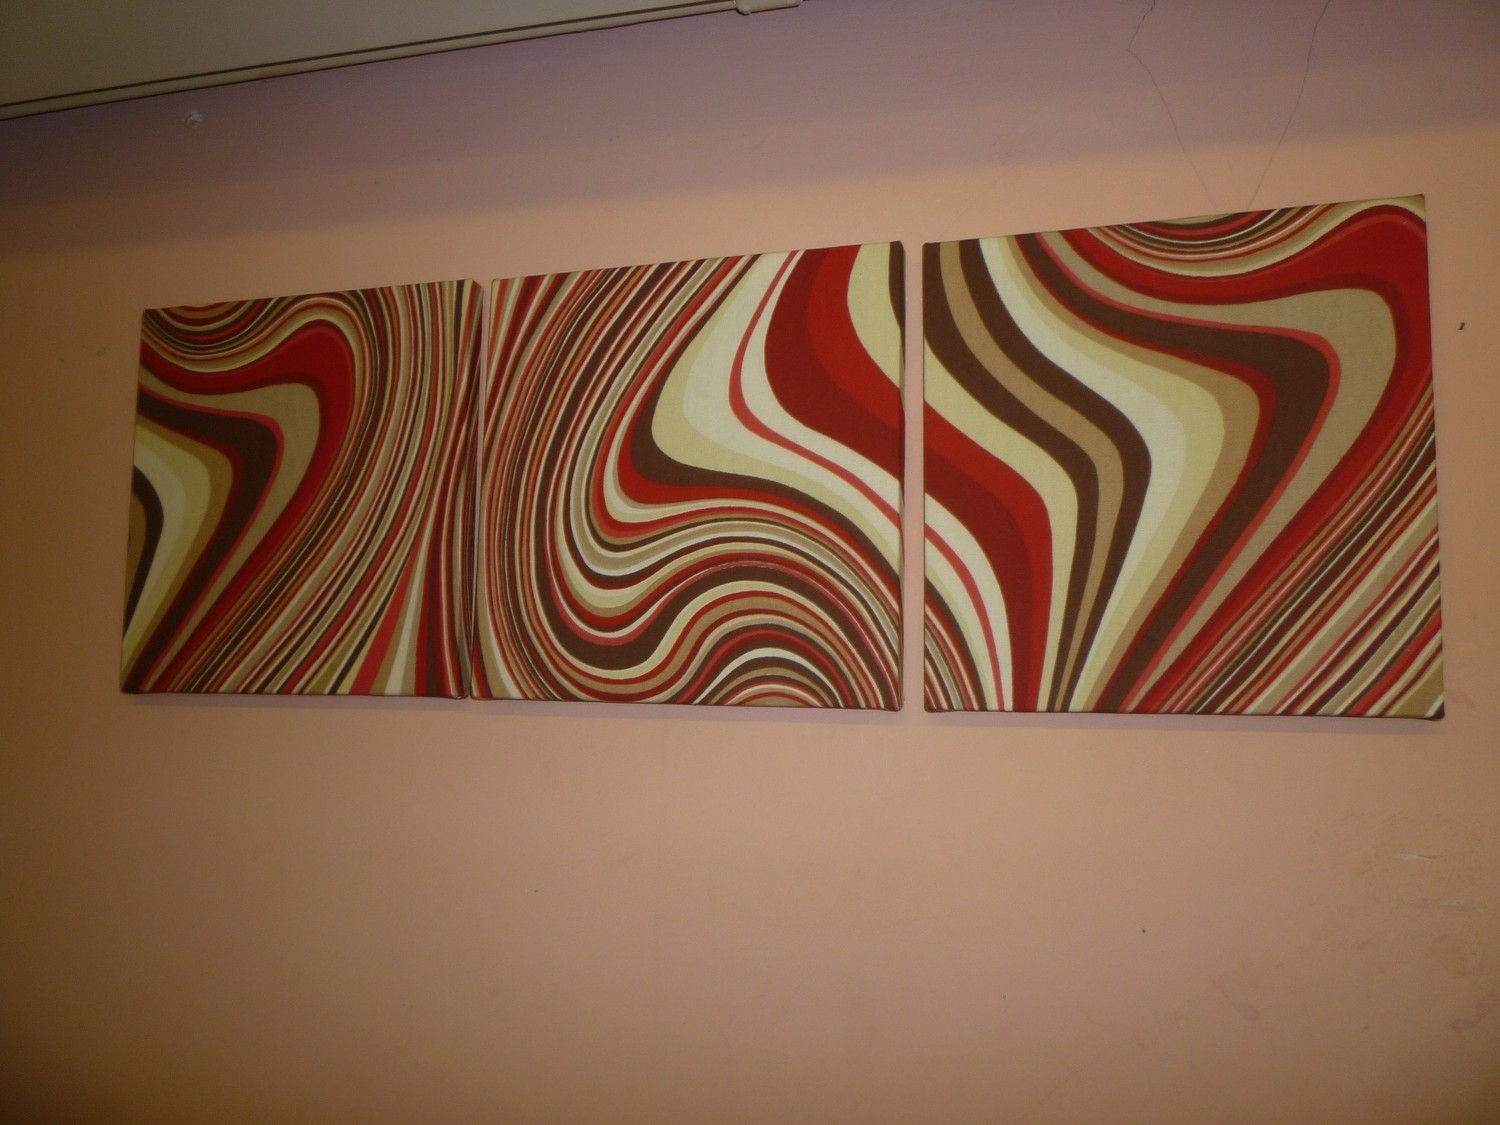 Decoration Ideas: Magnificent Reddish Abstract Fabric Wall Art And With Regard To Most Recent Abstract Fabric Wall Art (View 1 of 20)